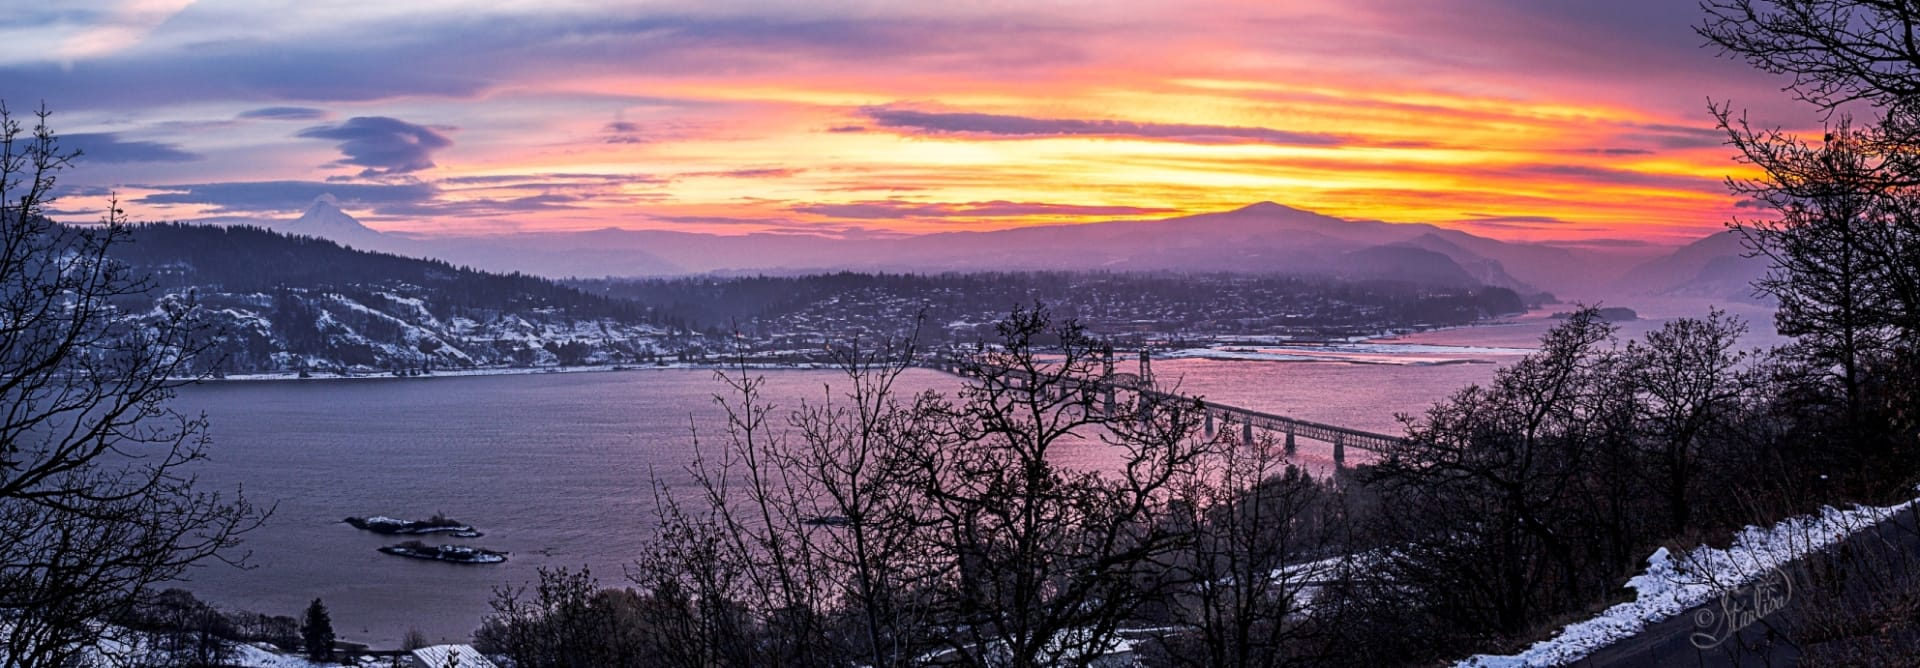 Winter-sunset-ColumbiaRiverGorge_1920.jpg